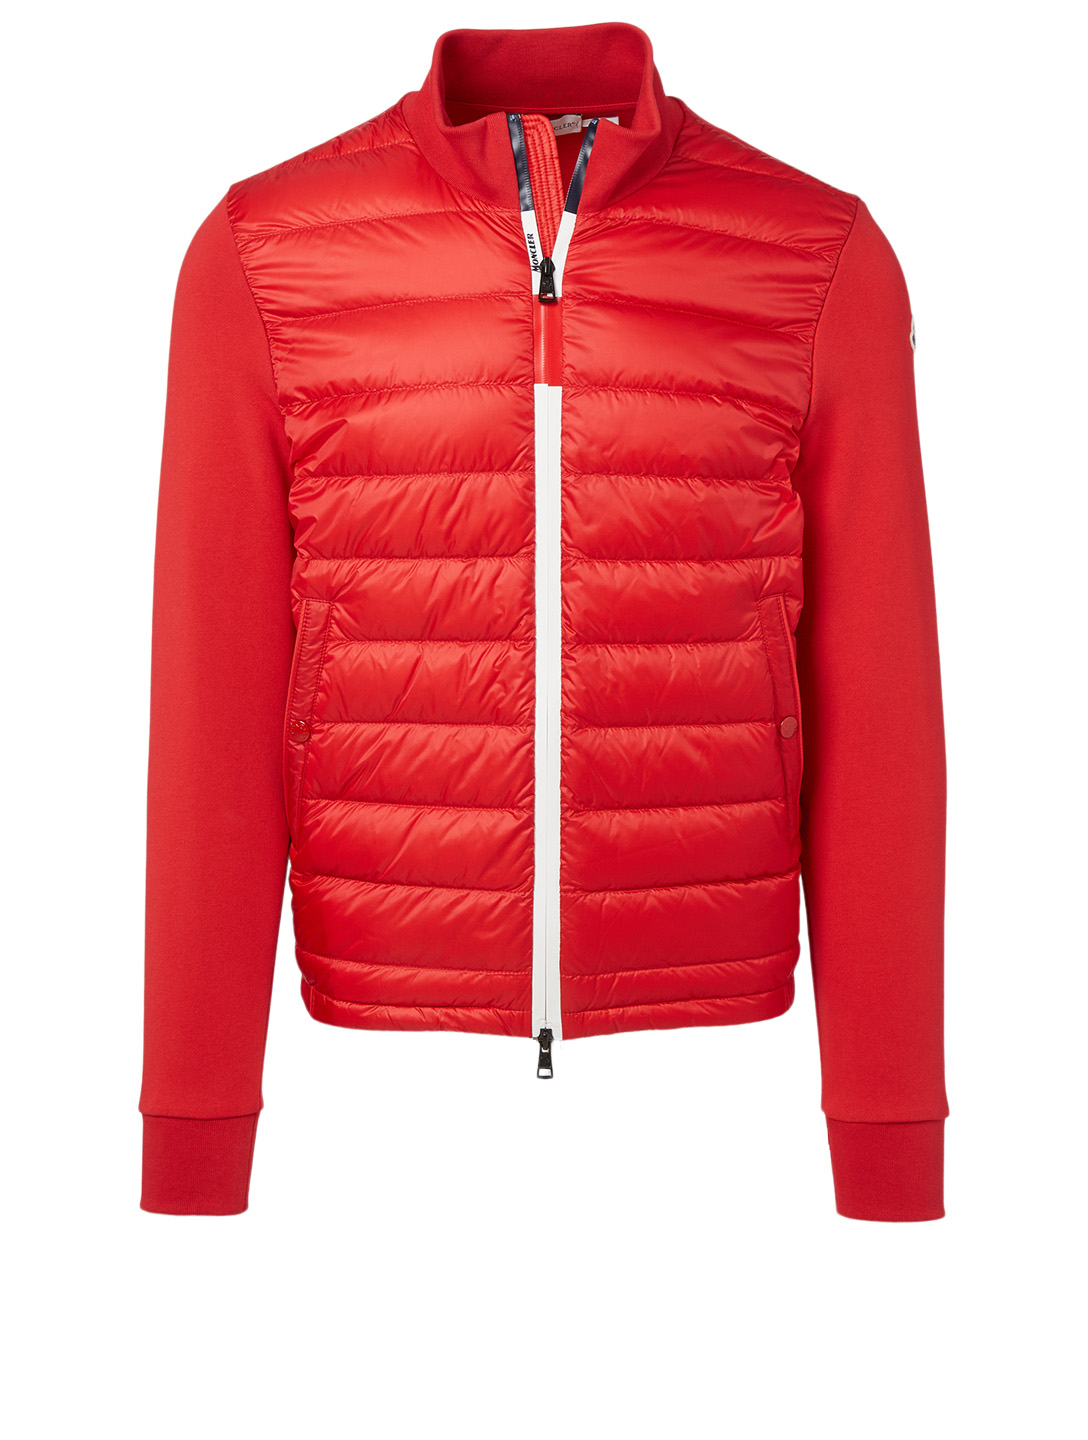 MONCLER Quilted Zip Cardigan Men's Red